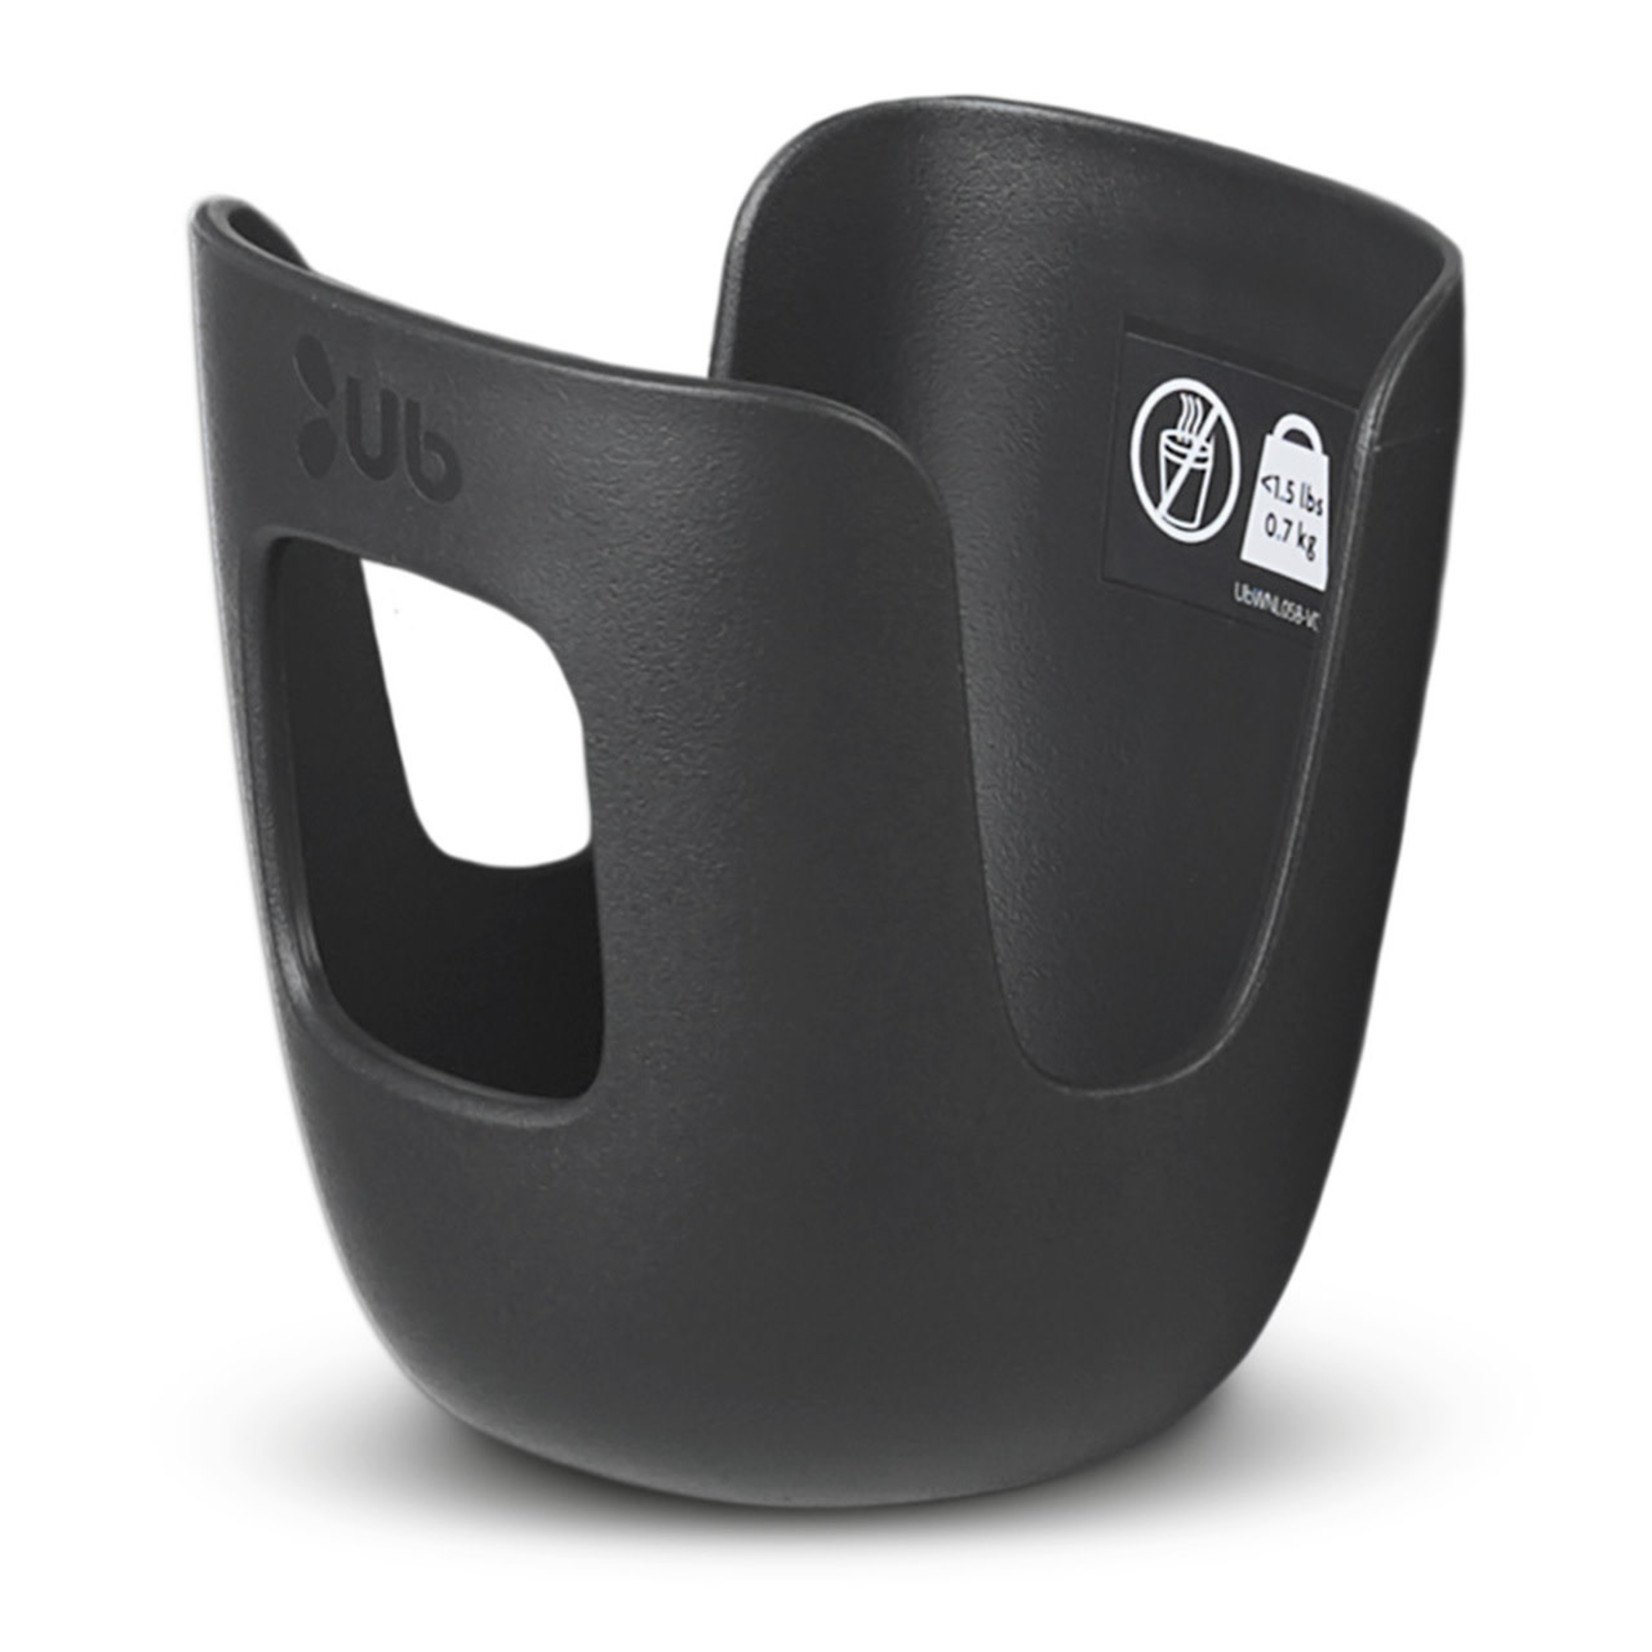 UPPAbaby Cup Holder for KNOX